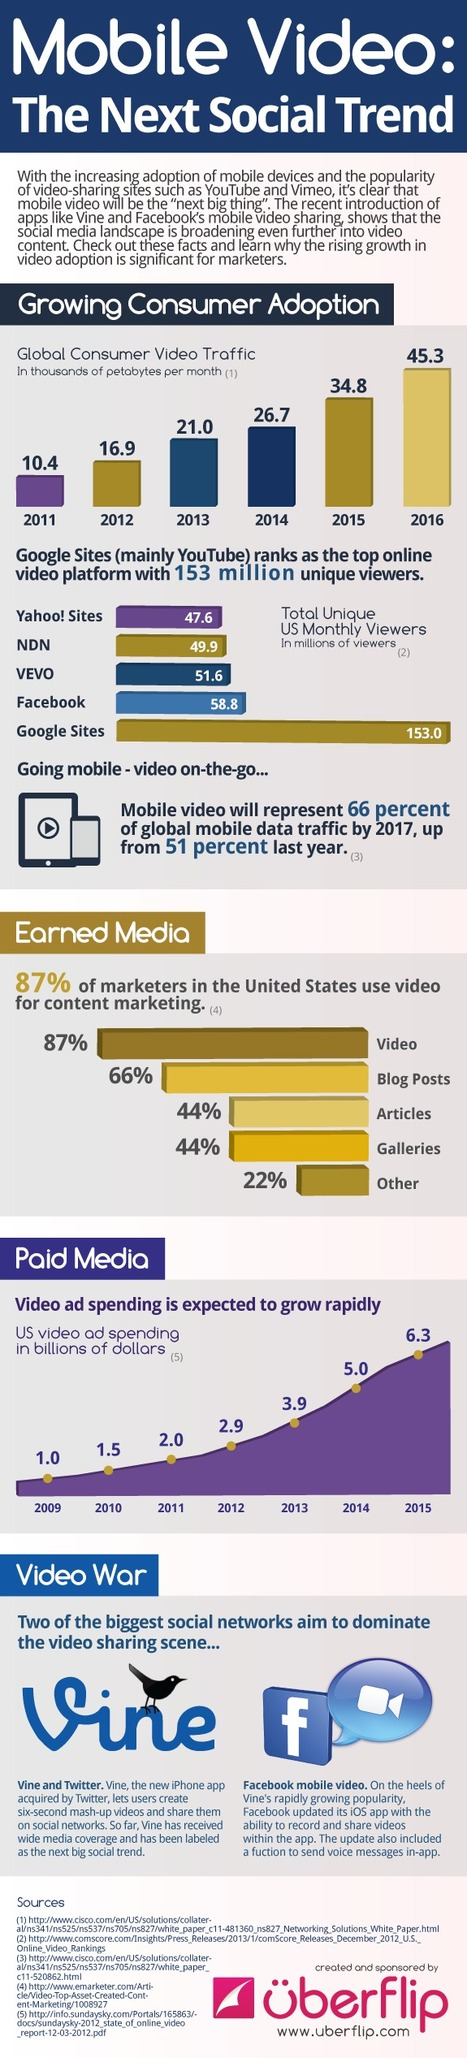 Is Mobile Video The Next Big Thing In Social Media? [INFOGRAPHIC] | Social Media 3.0 | Scoop.it